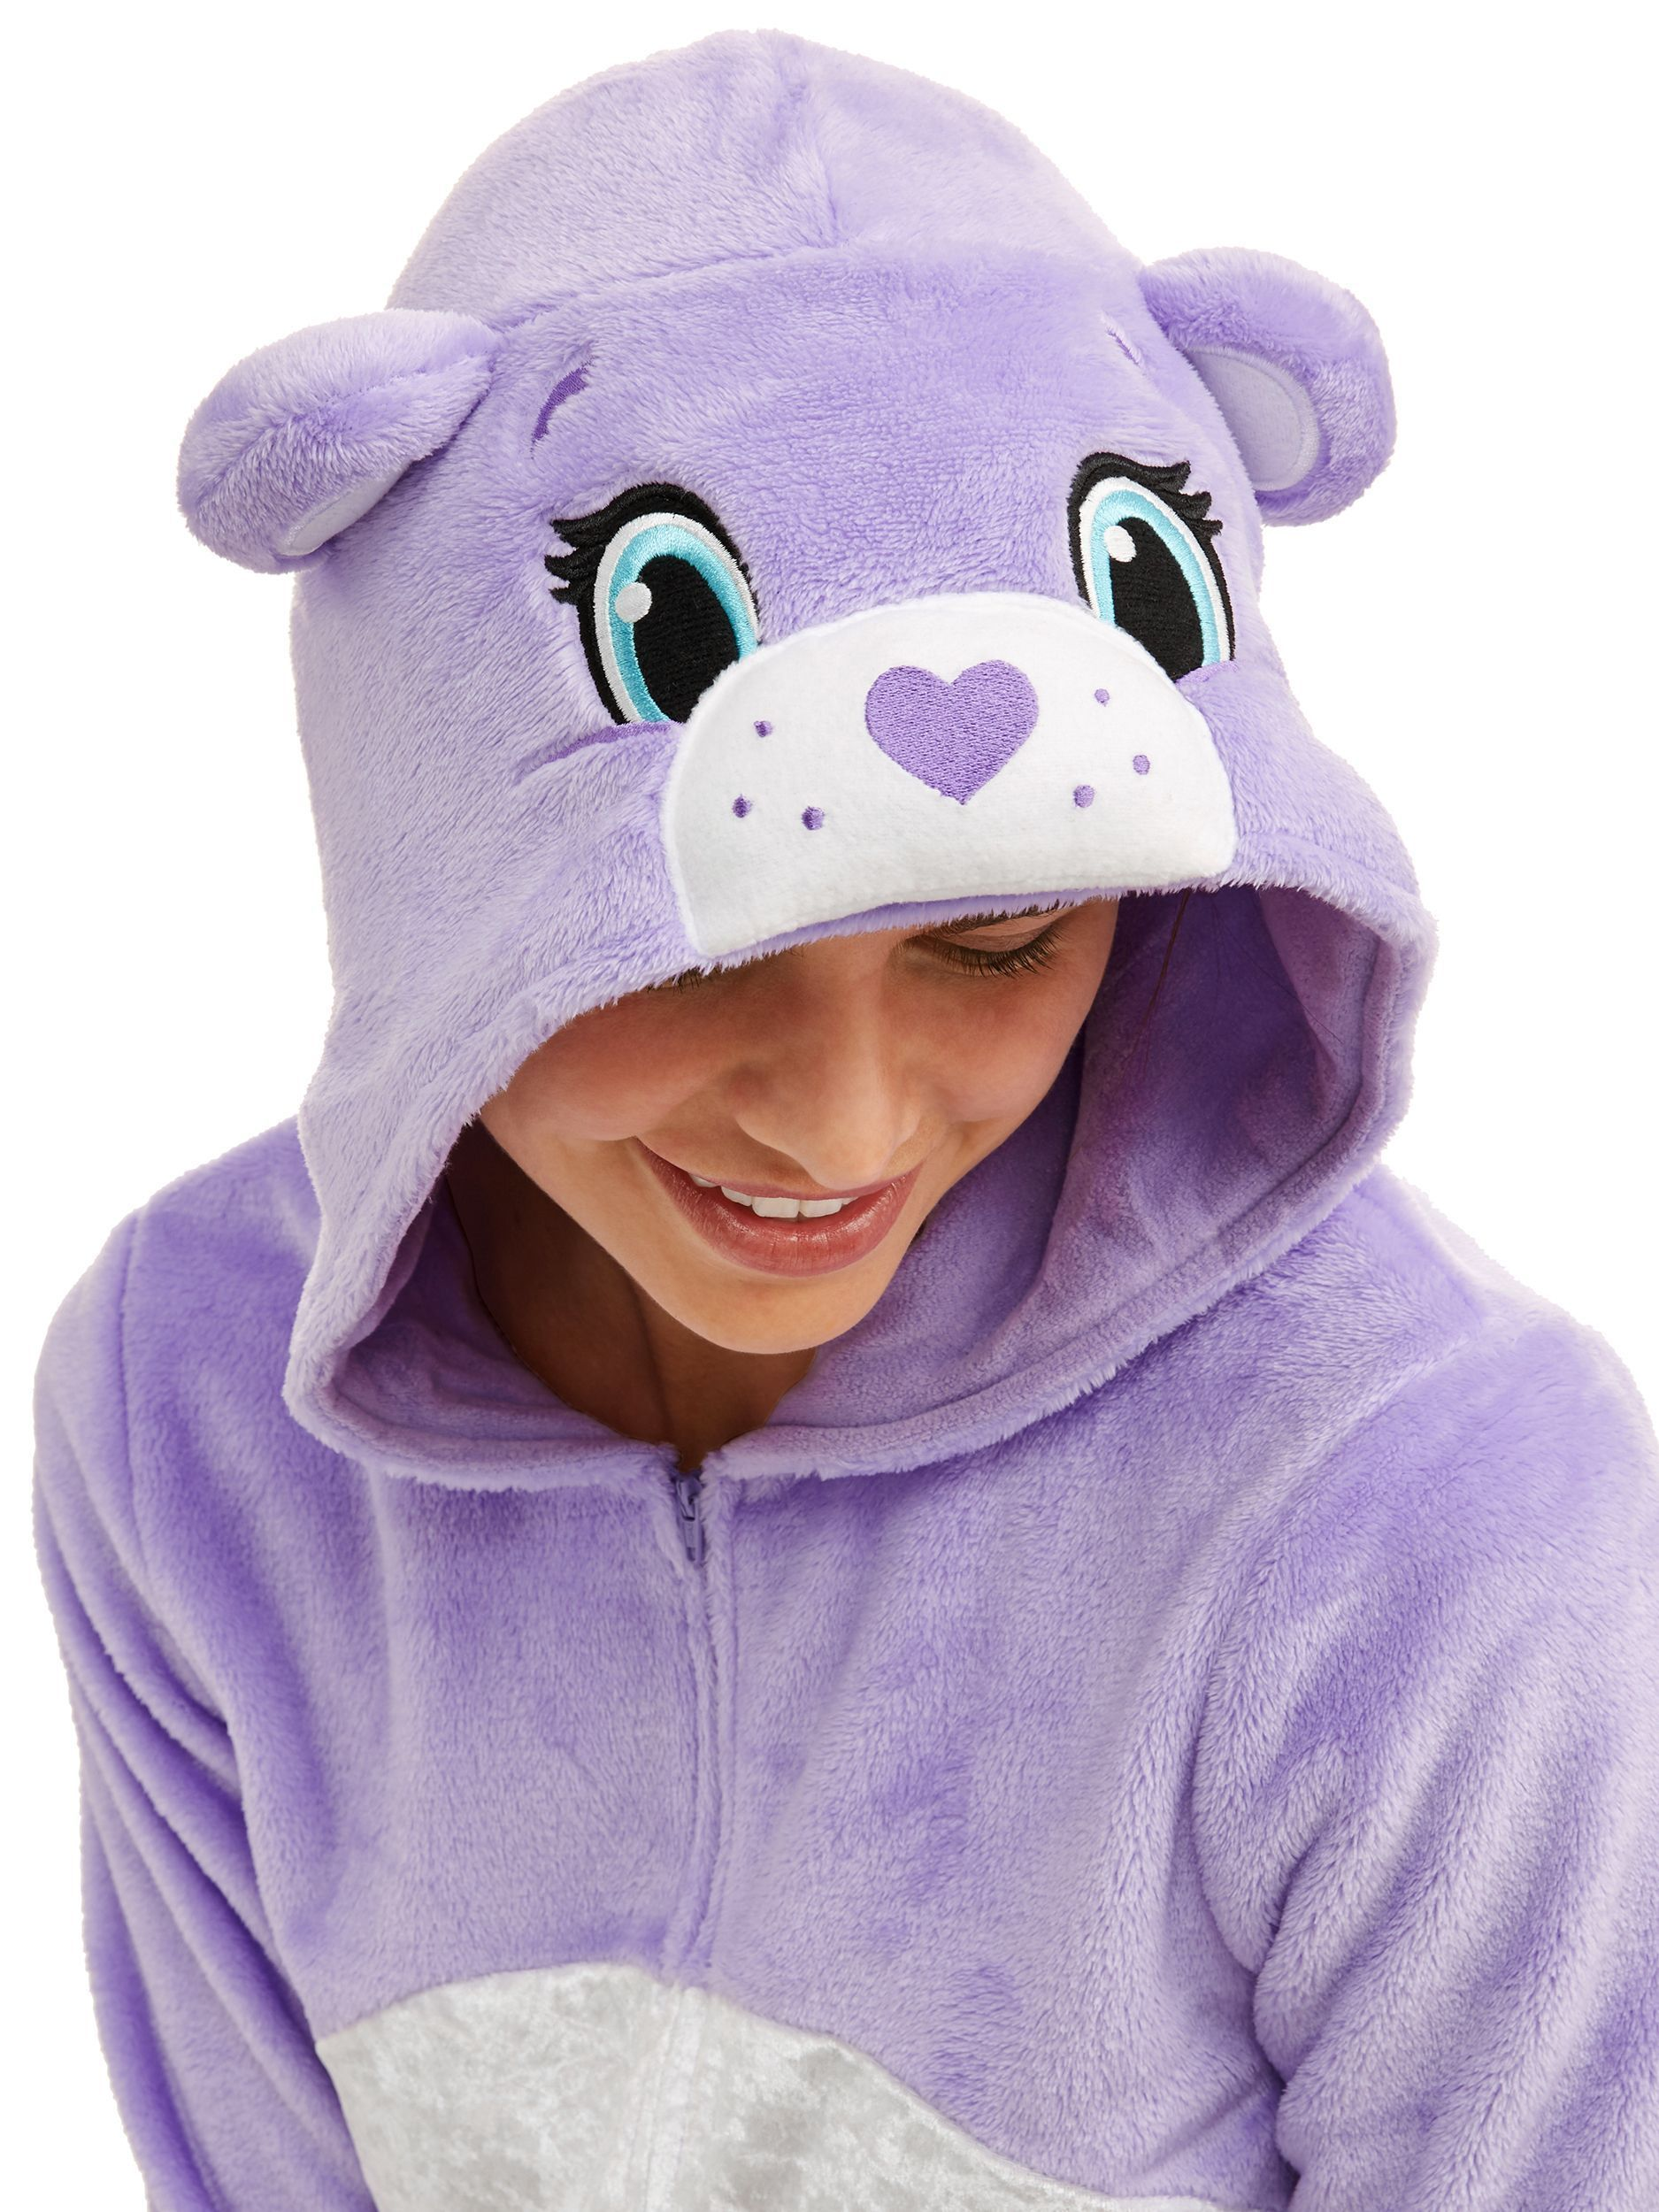 Care Bear - Women's and Women's plus care bears share bear union suit - Walmart.com #carebearcostume Care Bear - Women's and Women's plus care bears share bear union suit - Walmart.com #carebearcostume Care Bear - Women's and Women's plus care bears share bear union suit - Walmart.com #carebearcostume Care Bear - Women's and Women's plus care bears share bear union suit - Walmart.com #carebearcostume Care Bear - Women's and Women's plus care bears share bear union suit - Walmart.com #carebearcos #carebearcostume